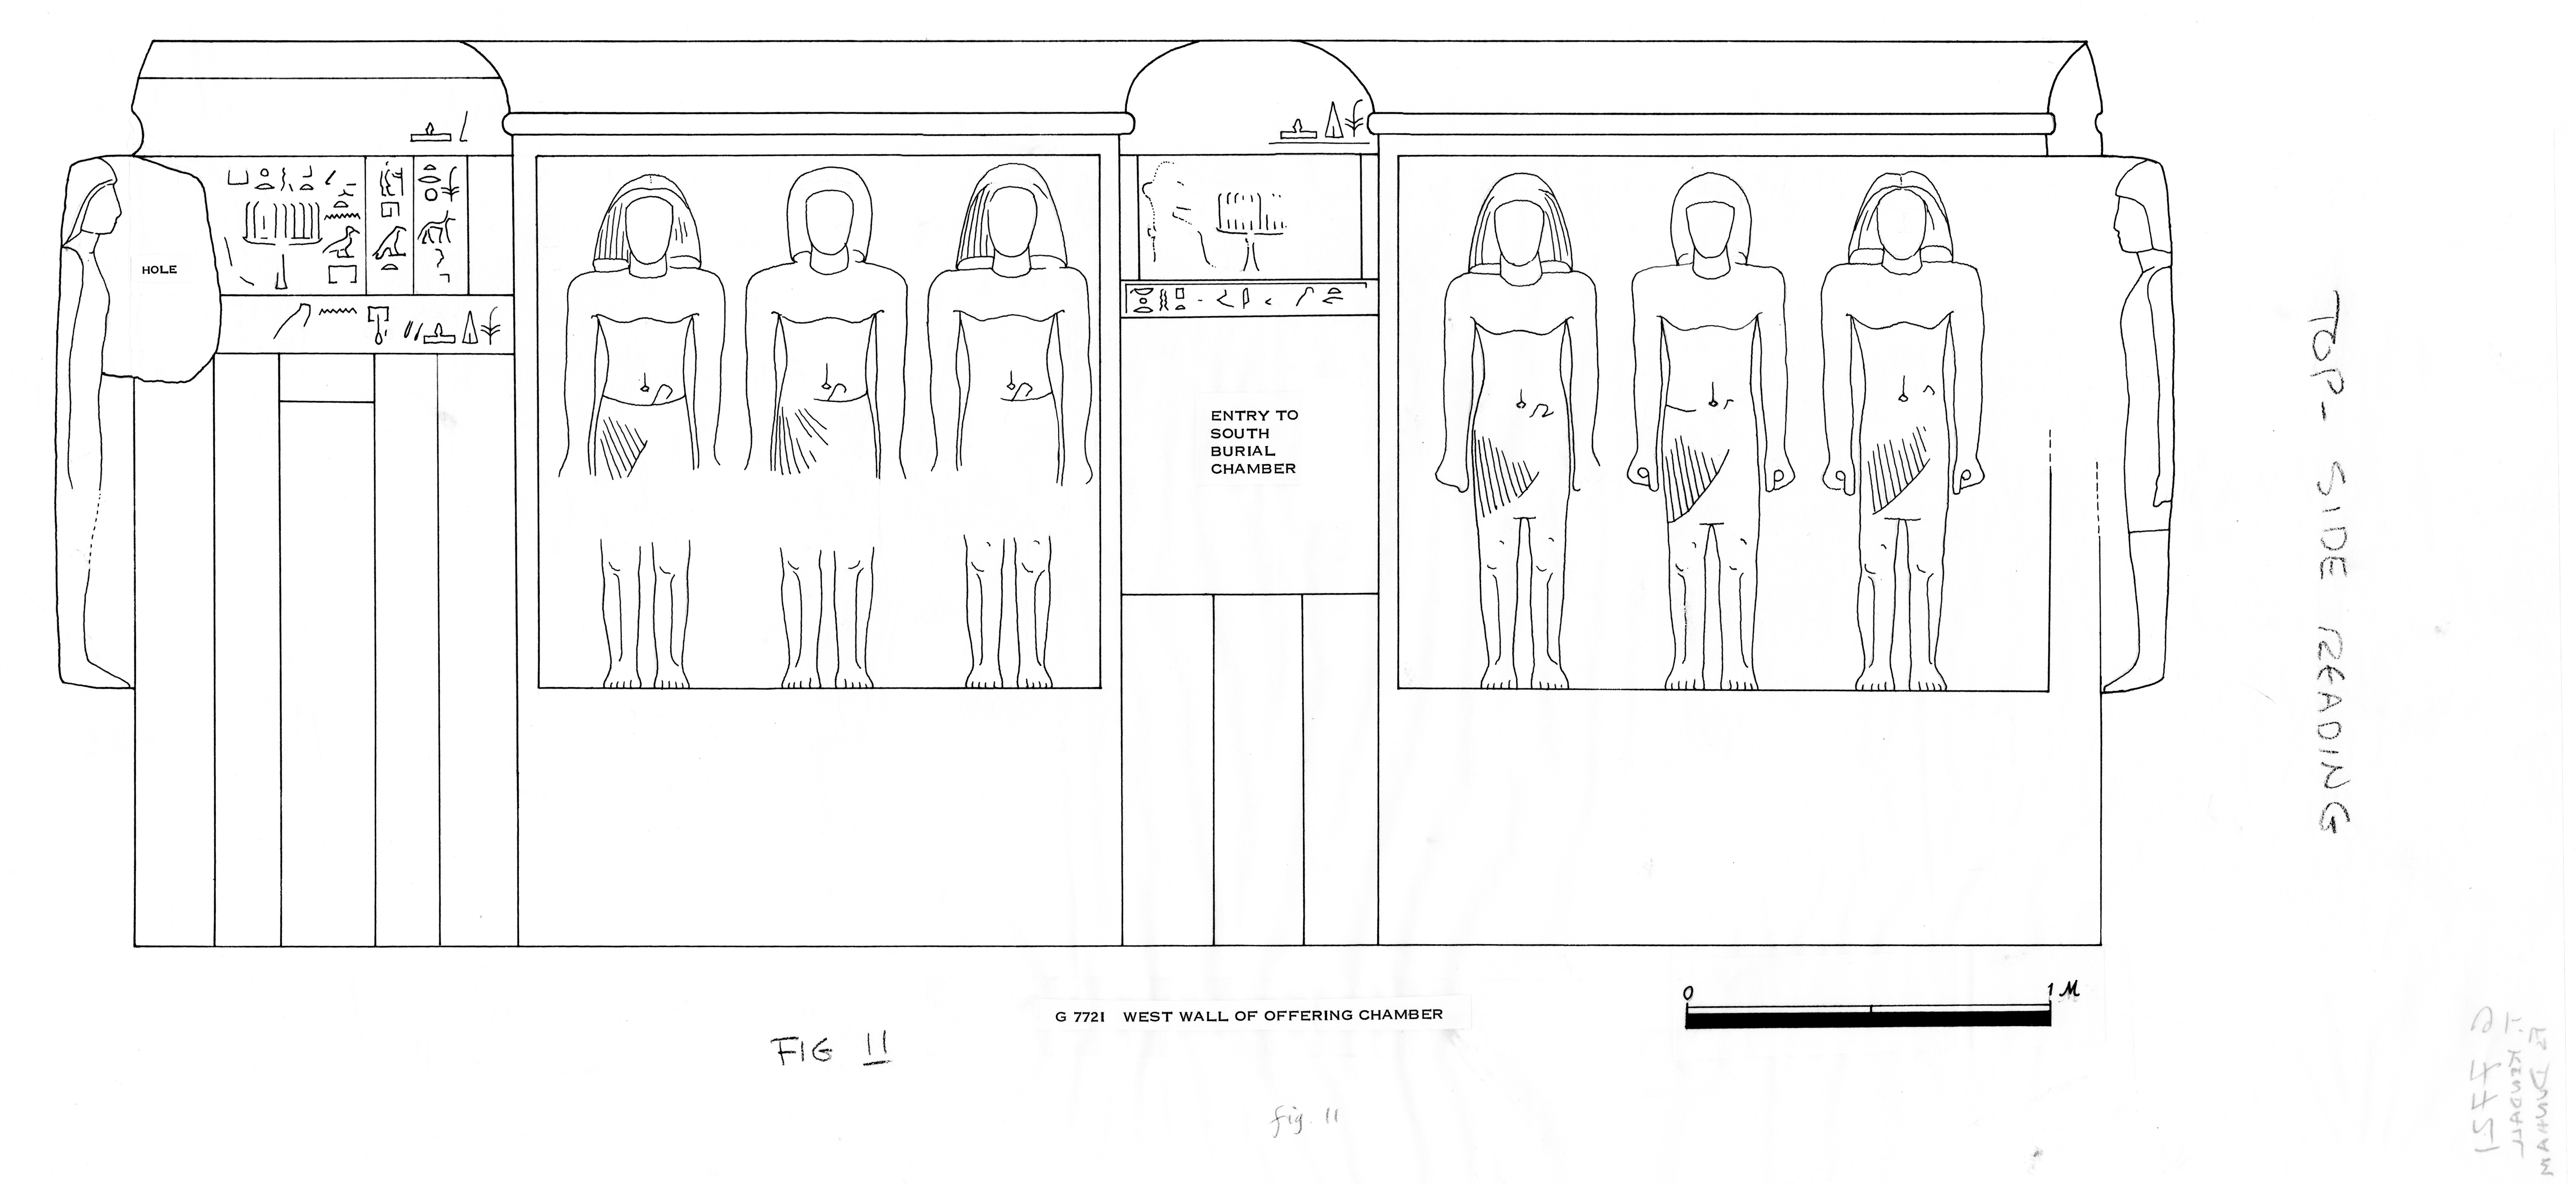 Drawings: G 7721, Elevation of offering chamber, W wall